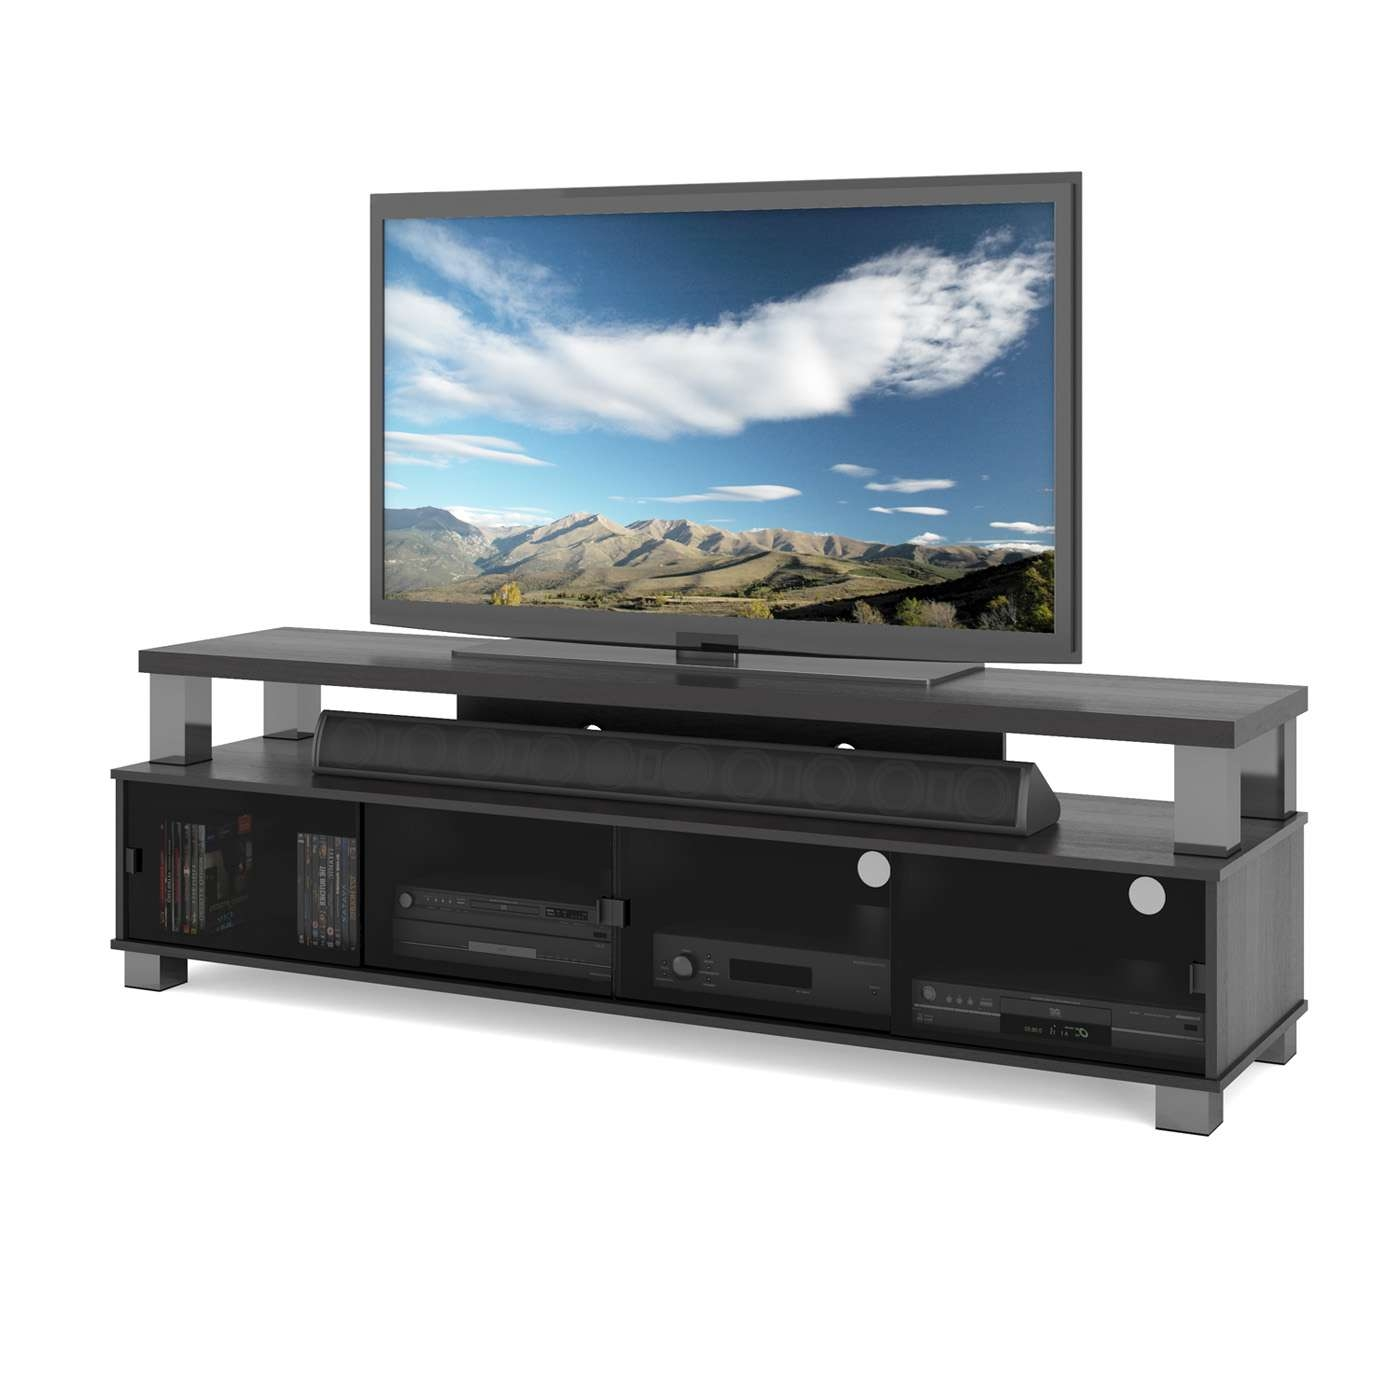 80 Inch Tv Stands | Lowe's Canada For 80 Inch Tv Stands (Gallery 2 of 15)